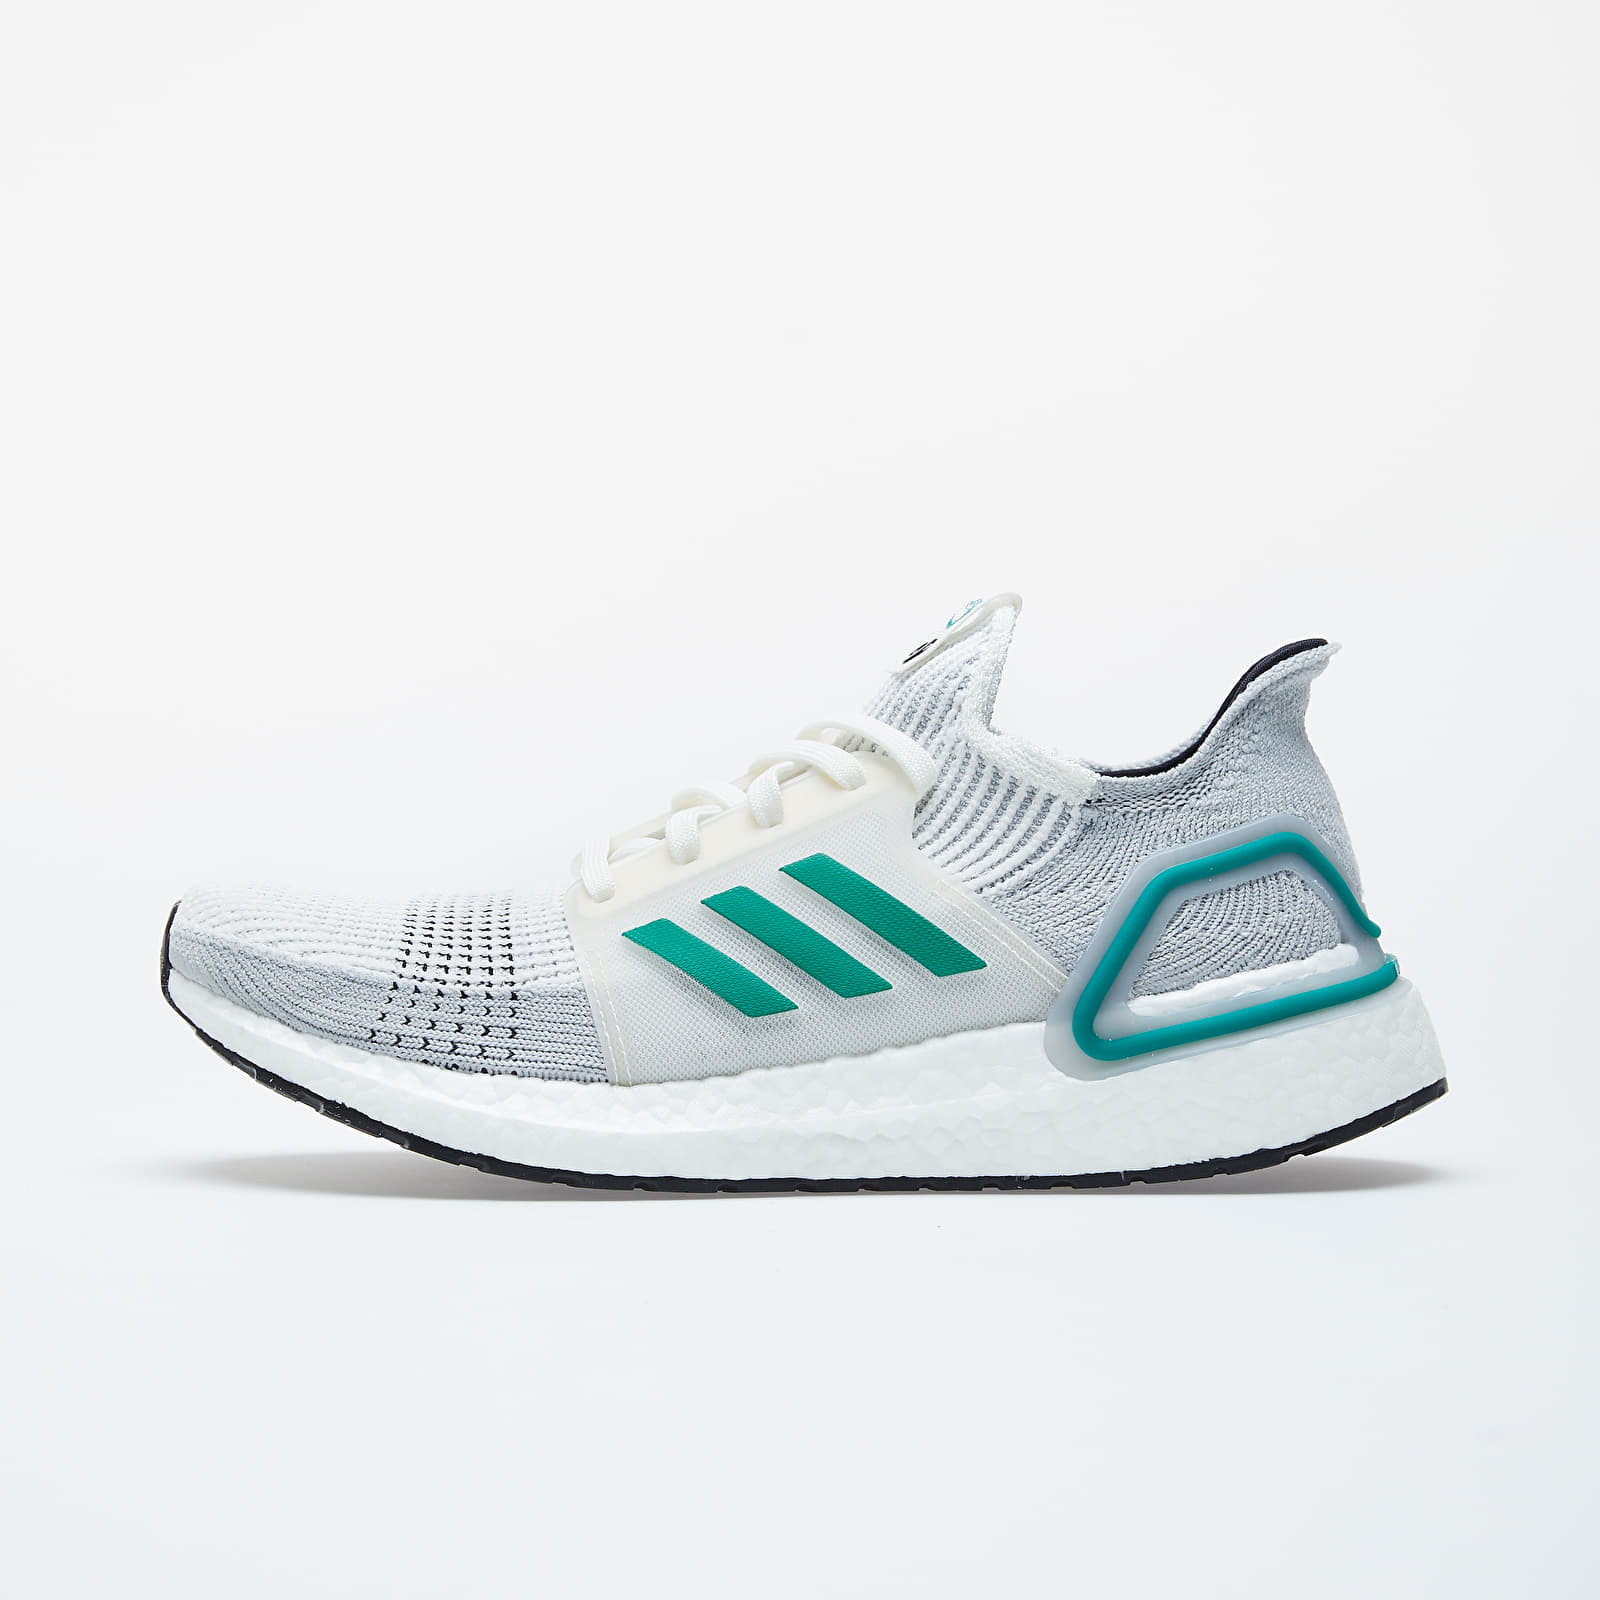 Férfi cipők adidas Consortium UltraBOOST 19 Core White/ Sub Green/ Grey Two